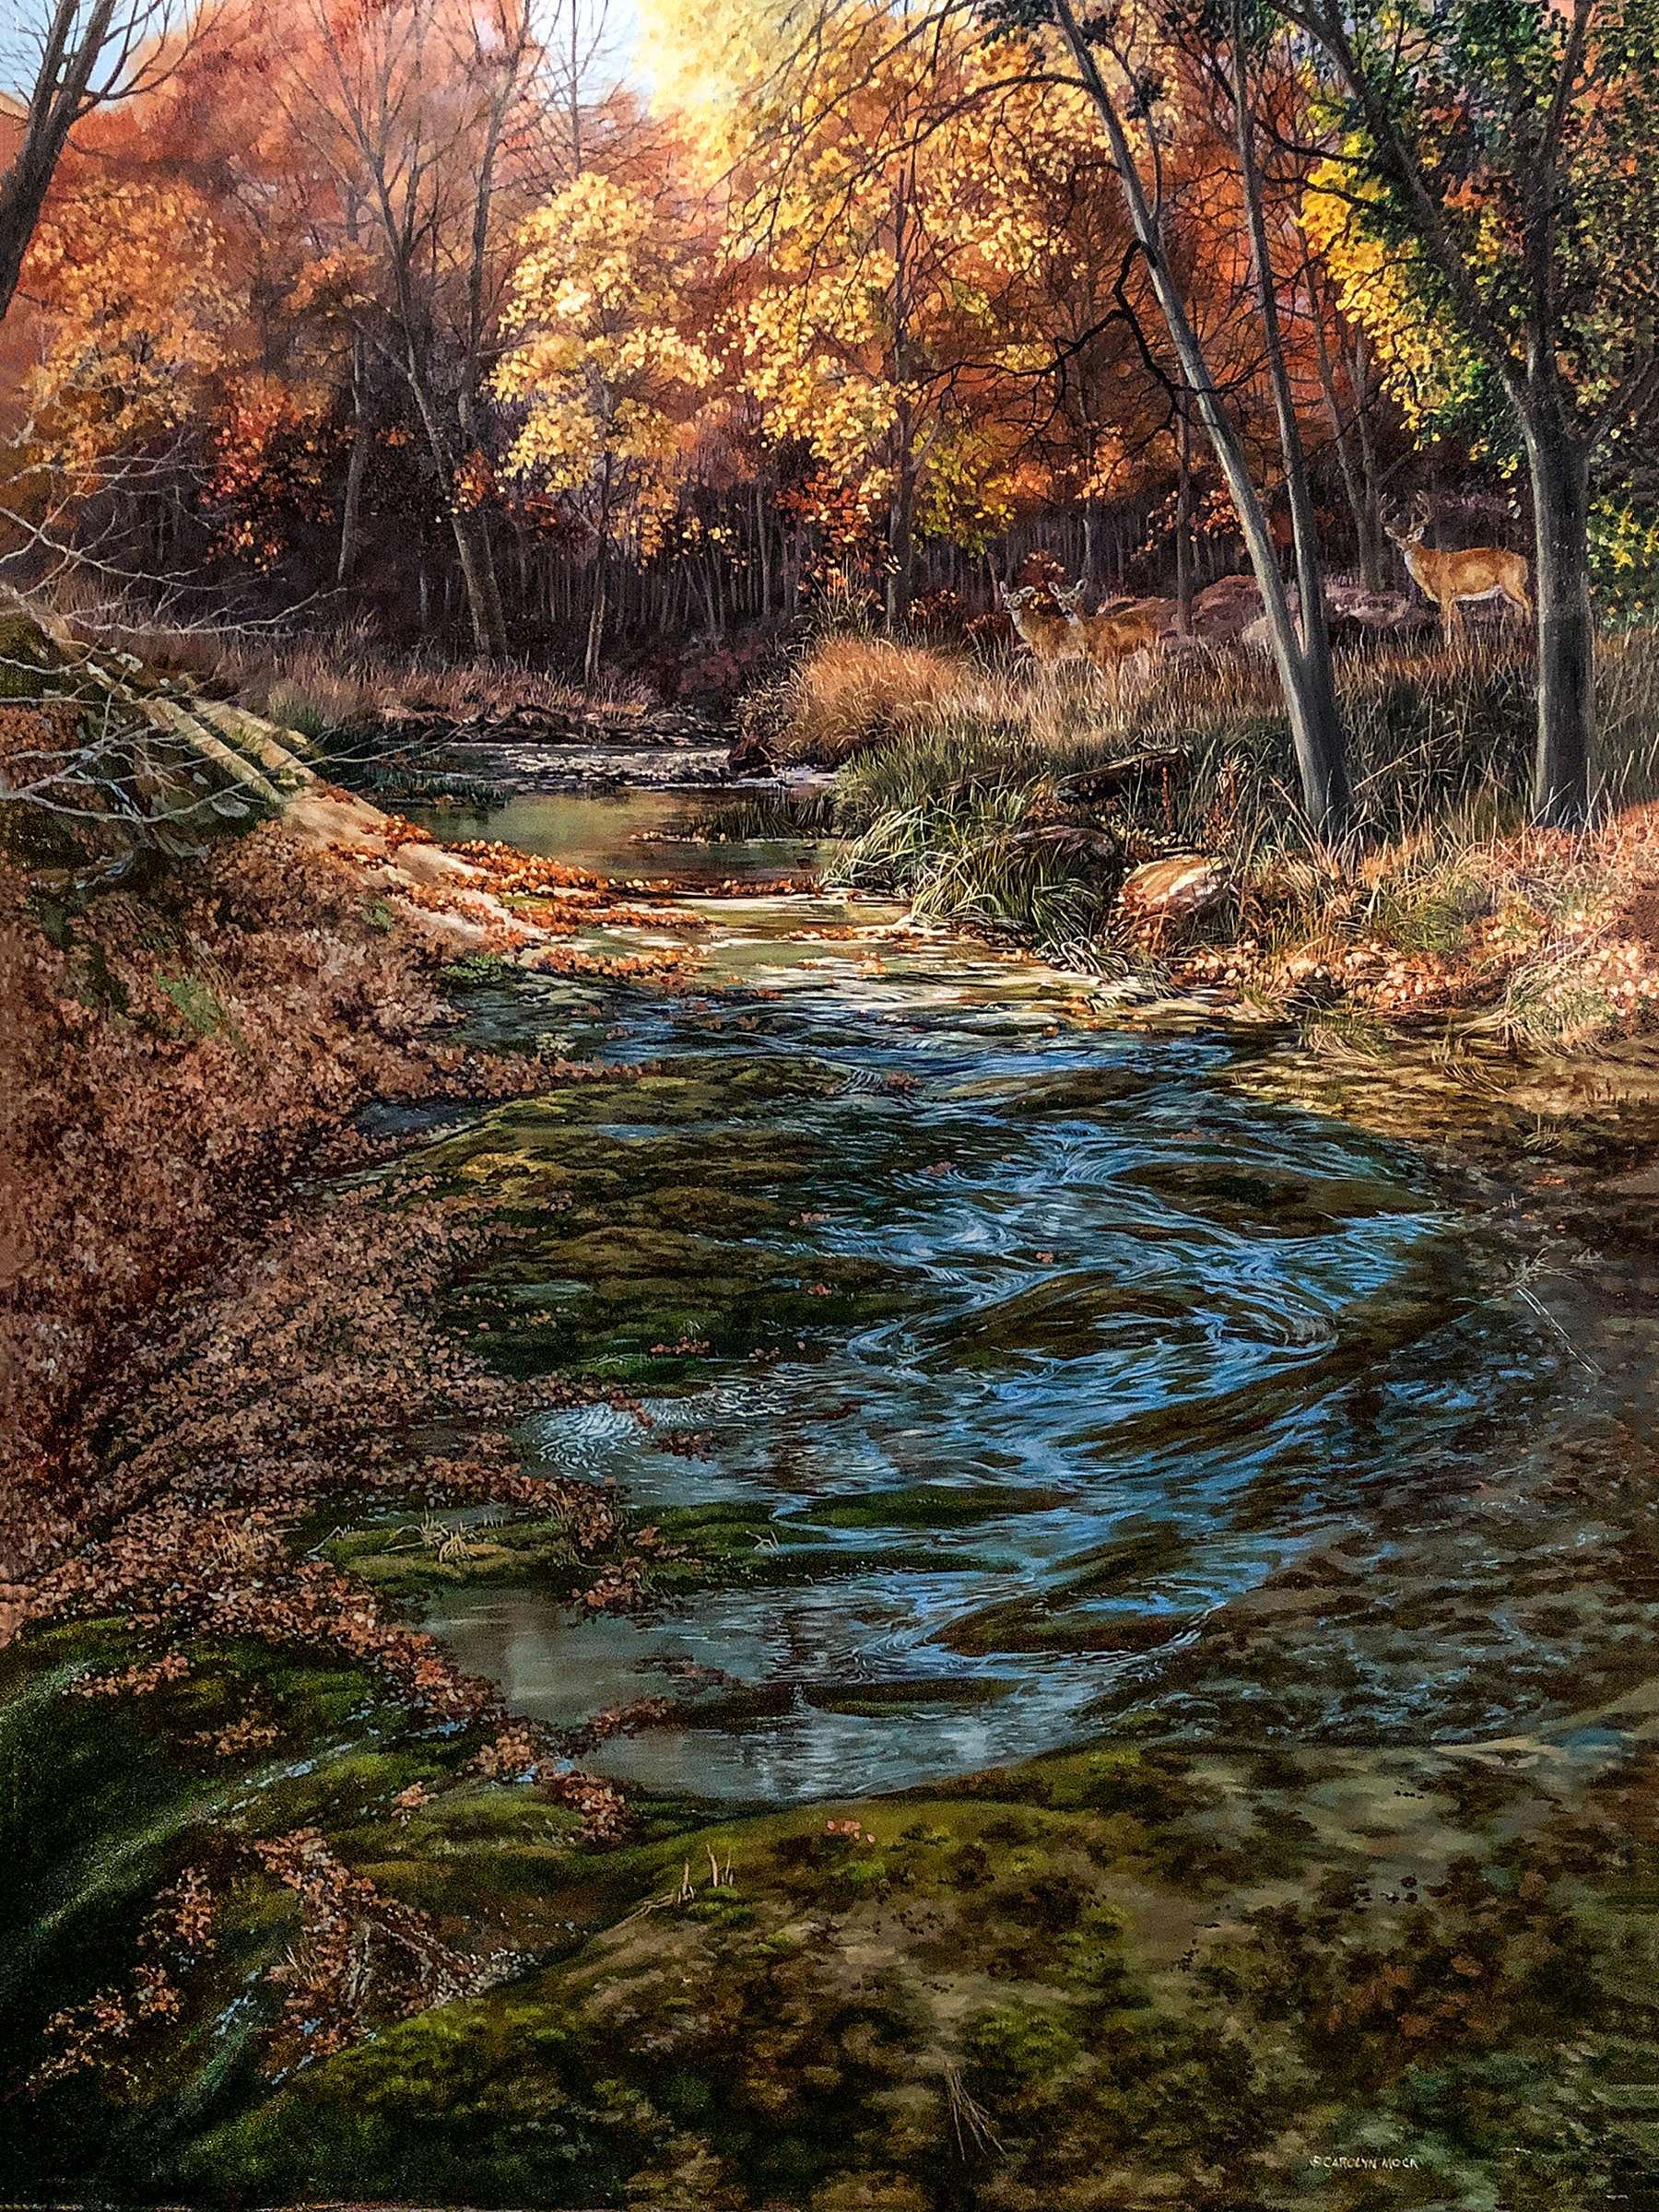 A stream runs through a field as the leaves begin to change